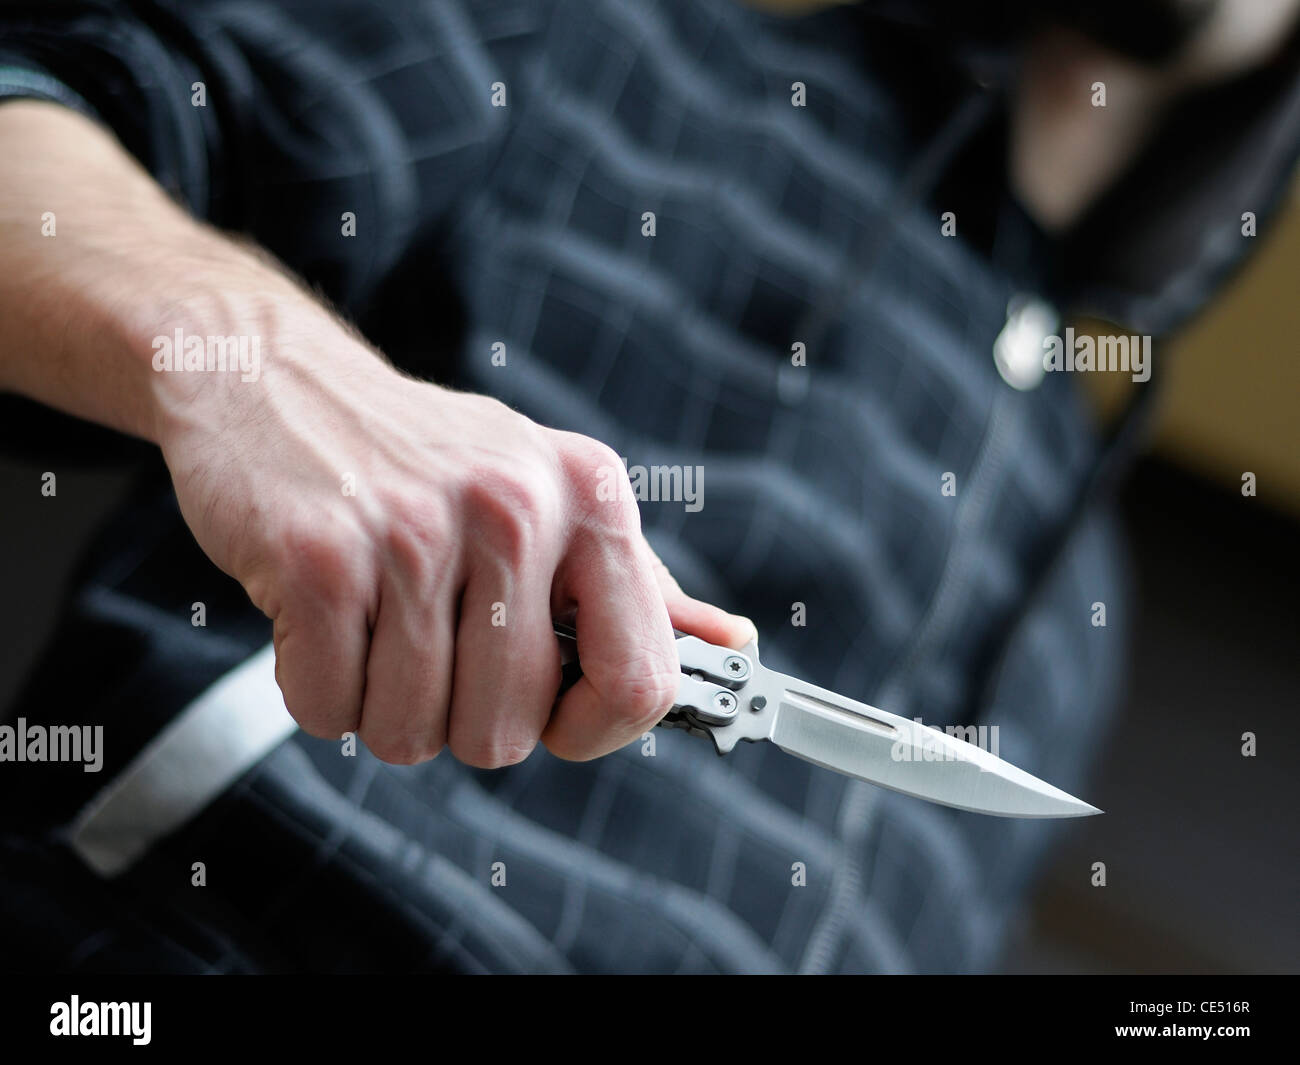 Knife Crime. Hooded Male Brandishing a Butterfly Knife. - Stock Image